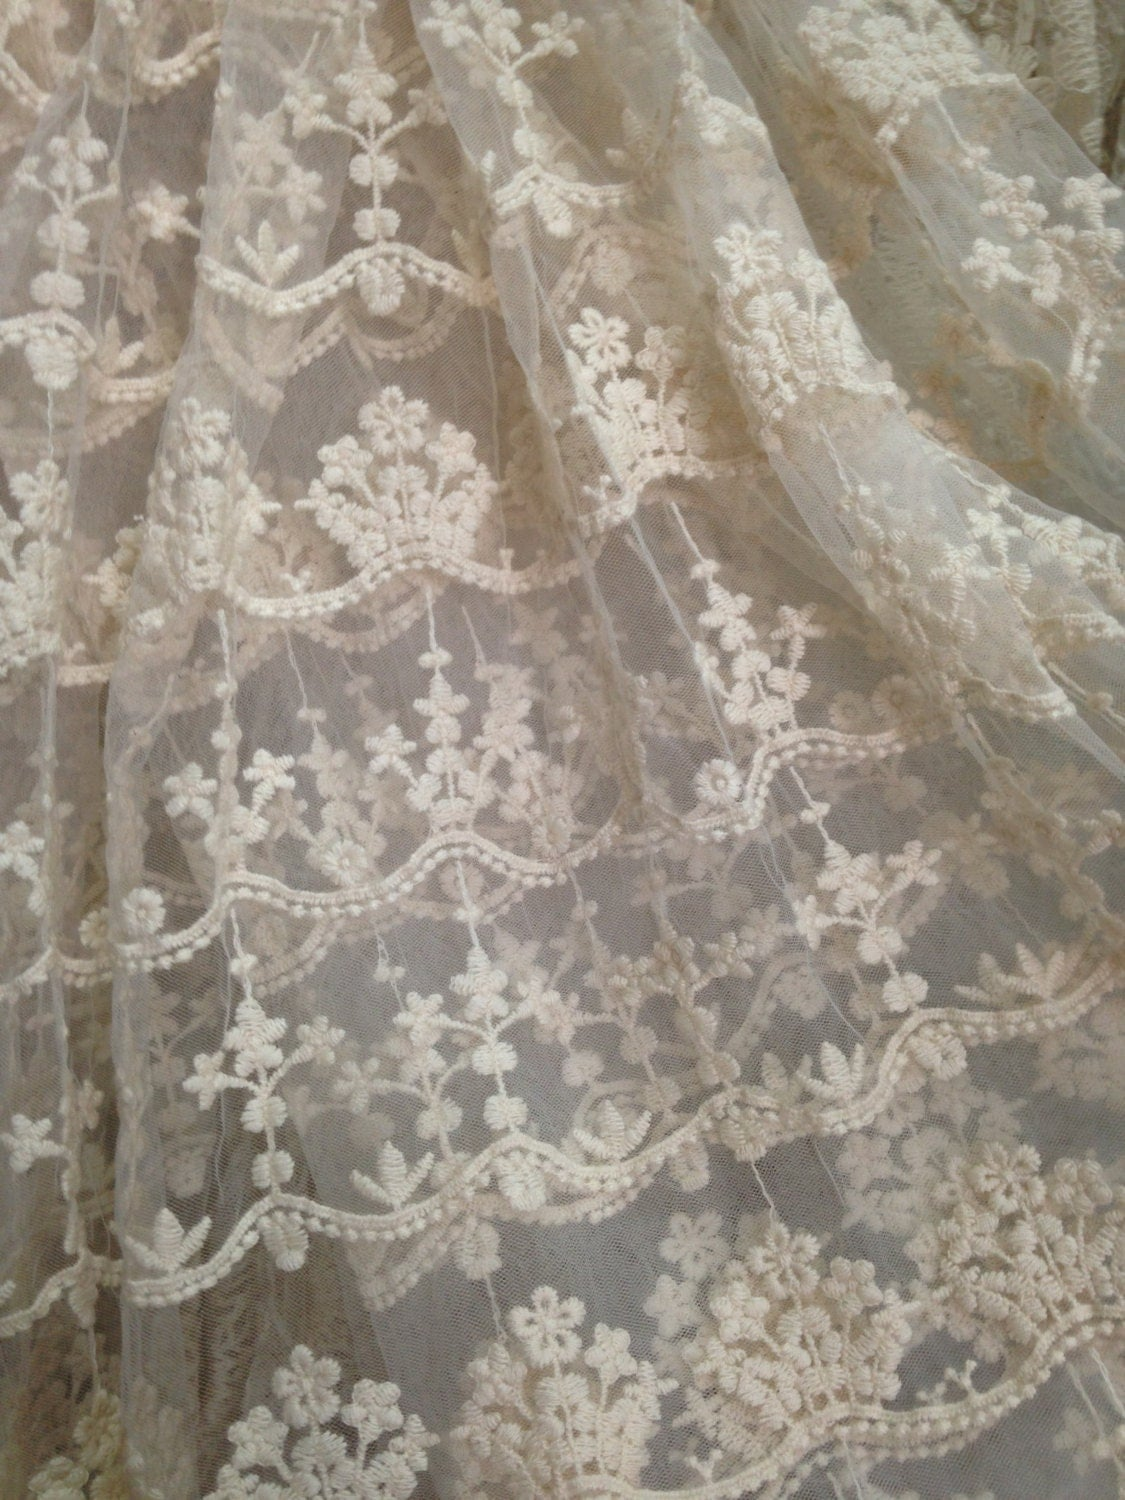 Ivory Lace Fabric Embroidered Tulle Lace Fabric Retro Bridal